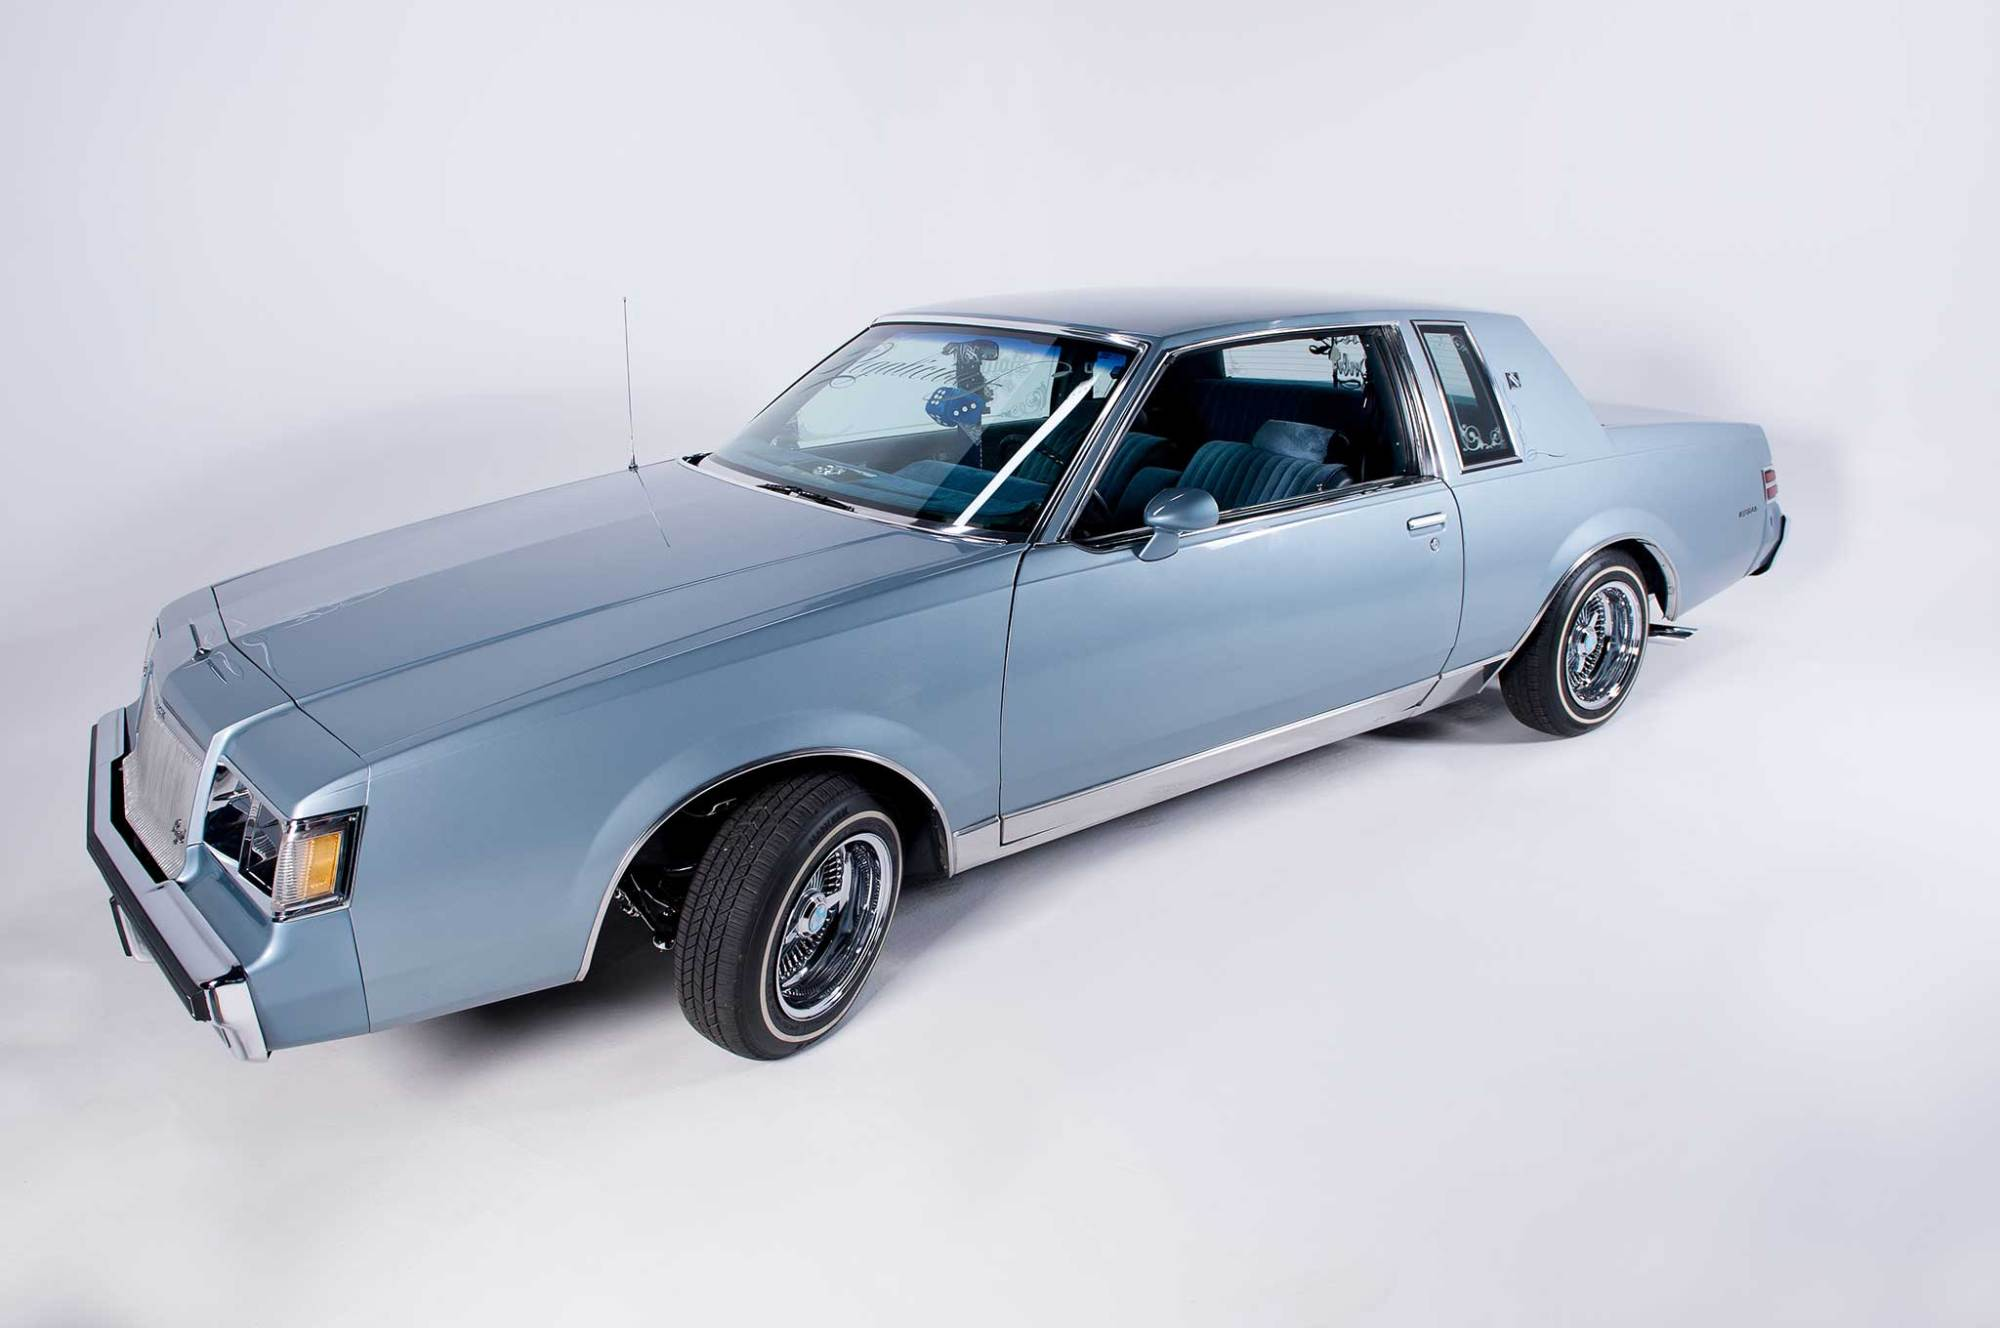 hight resolution of 1980 buick regal driver side front view